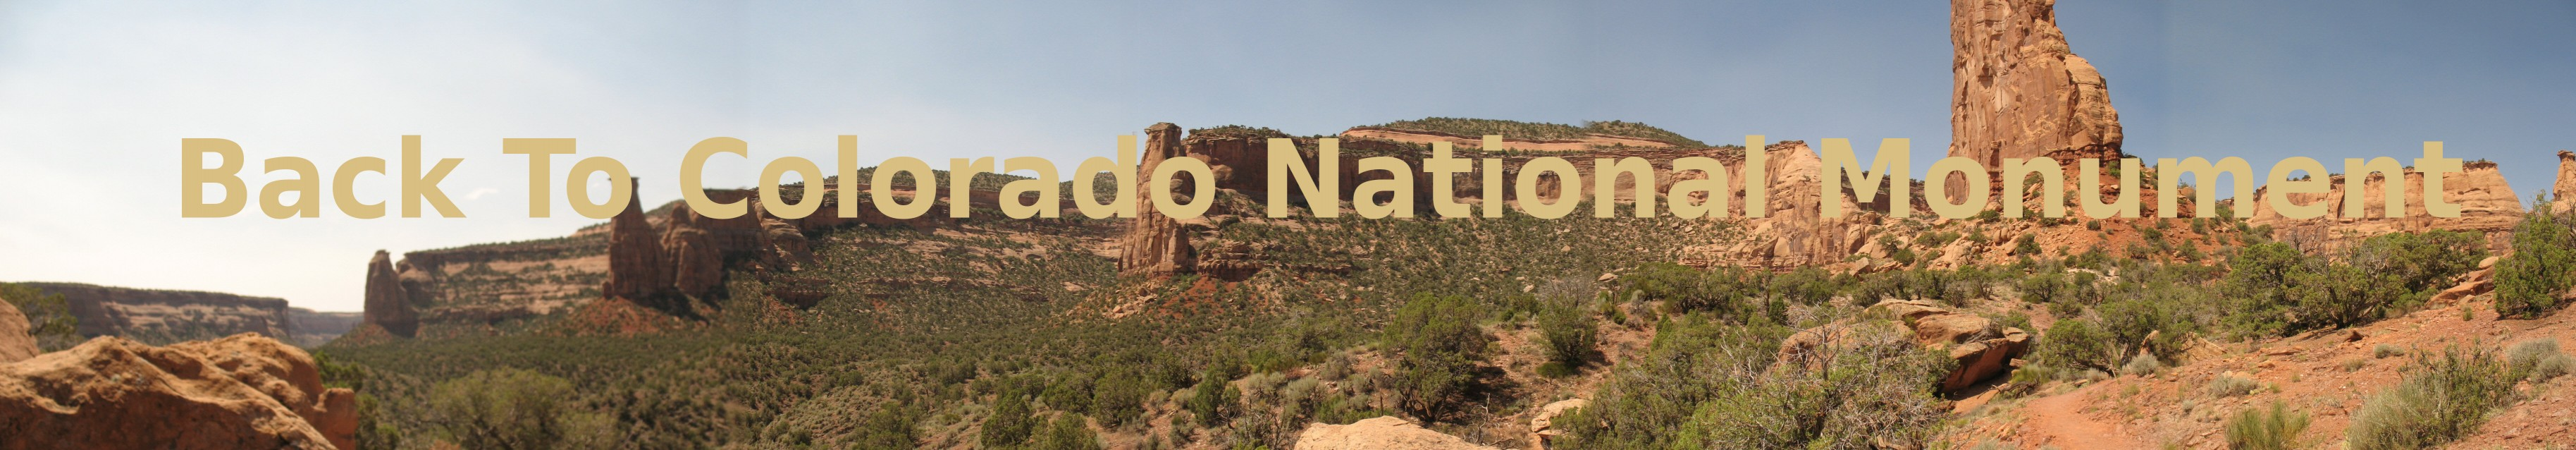 Click Here to Go Back to Colorado National Monument